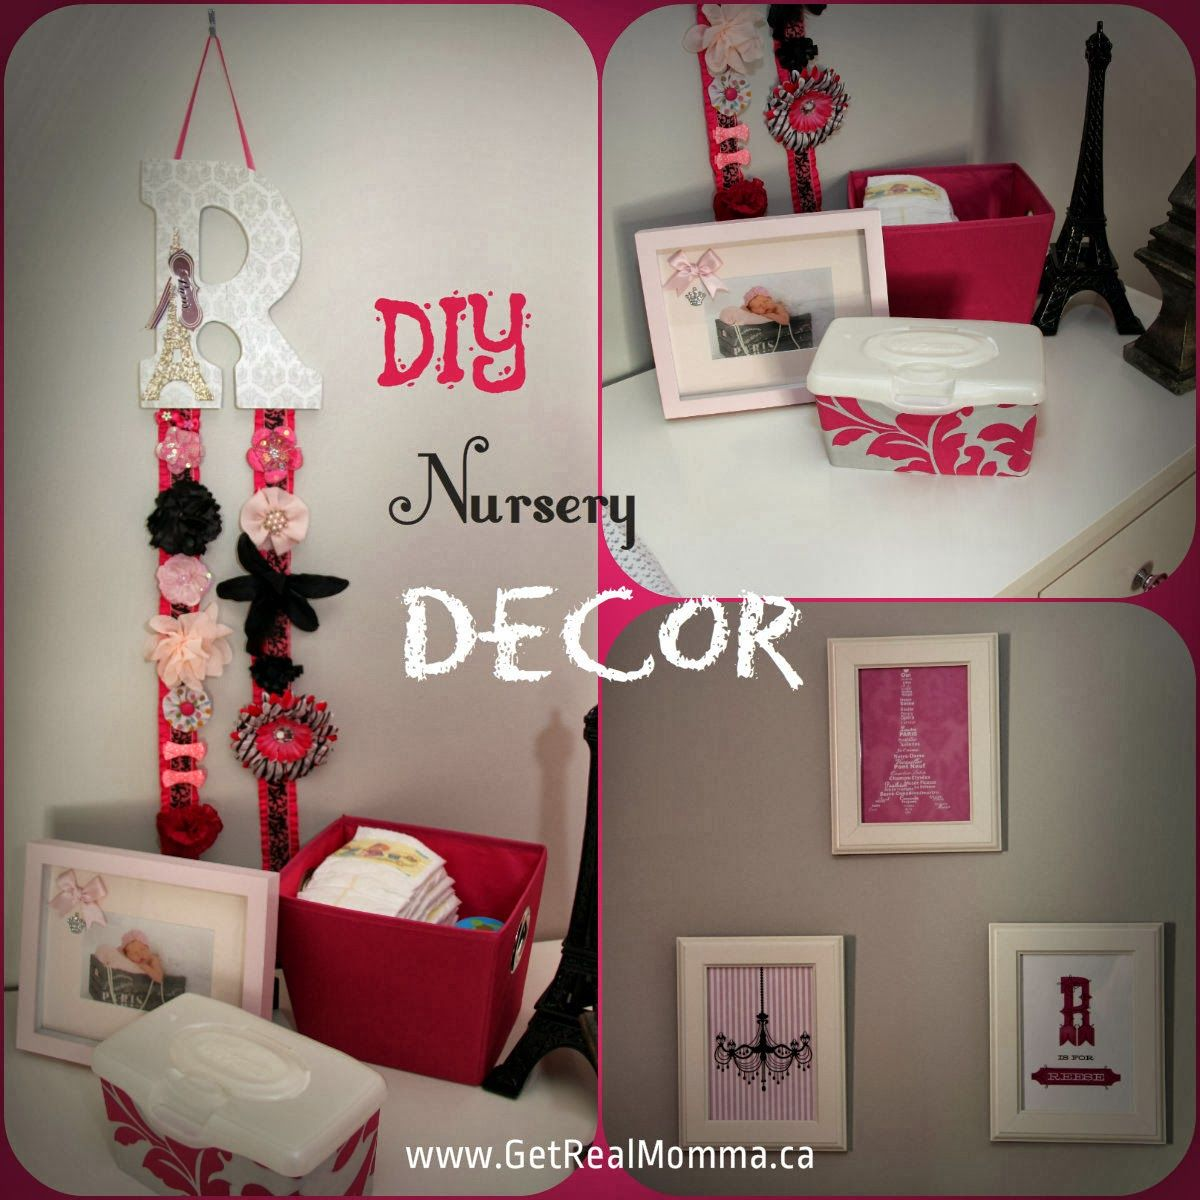 Do it yourself nursery dcor getrealmomma baby shower do it yourself nursery dcor getrealmomma solutioingenieria Images